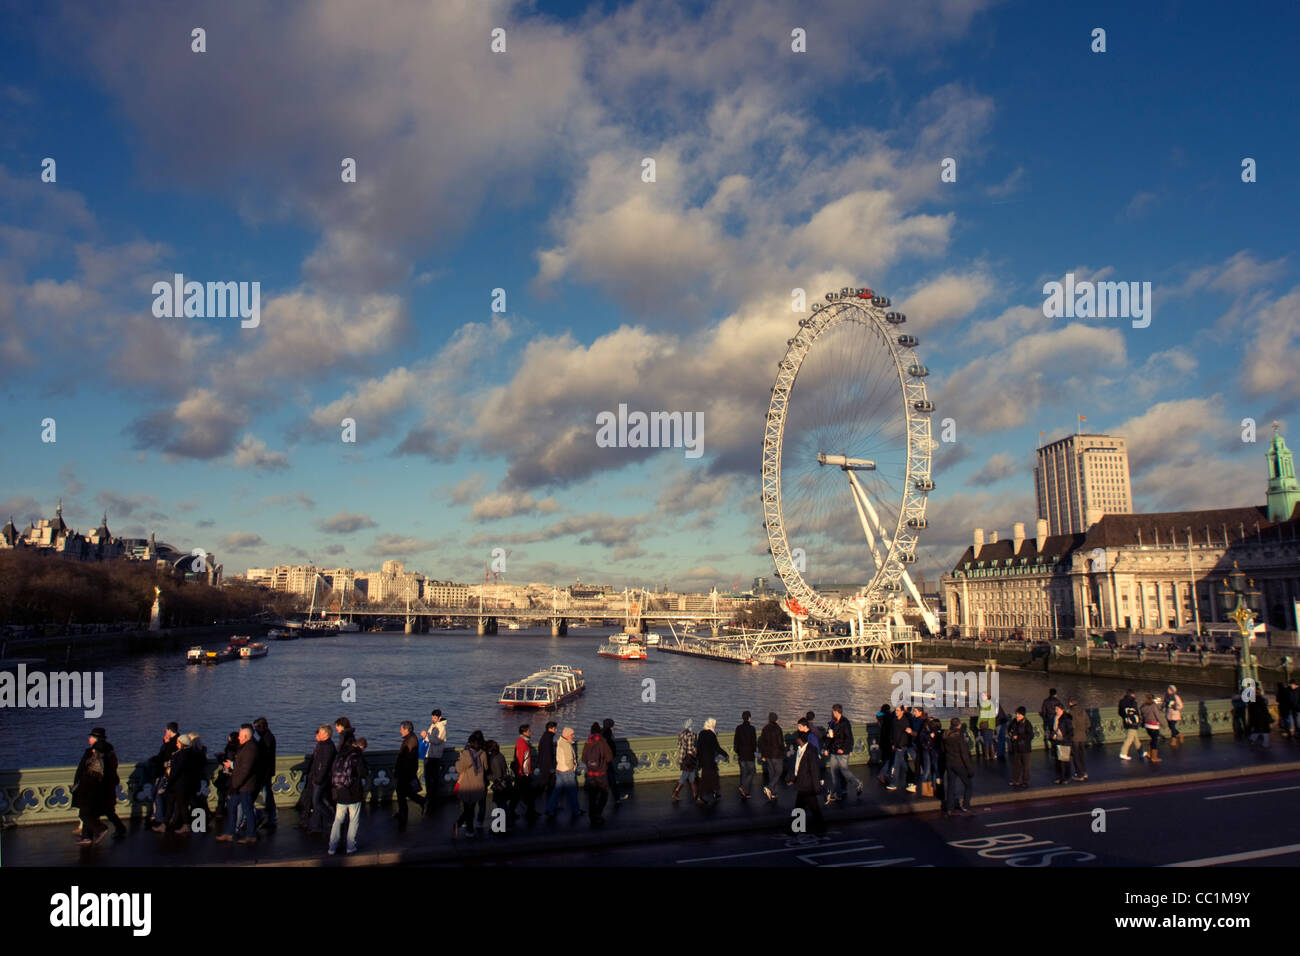 View over the River Thames, London Eye and pedestrians walking along Westminster Bridge, London, England, UnitedStock Photo